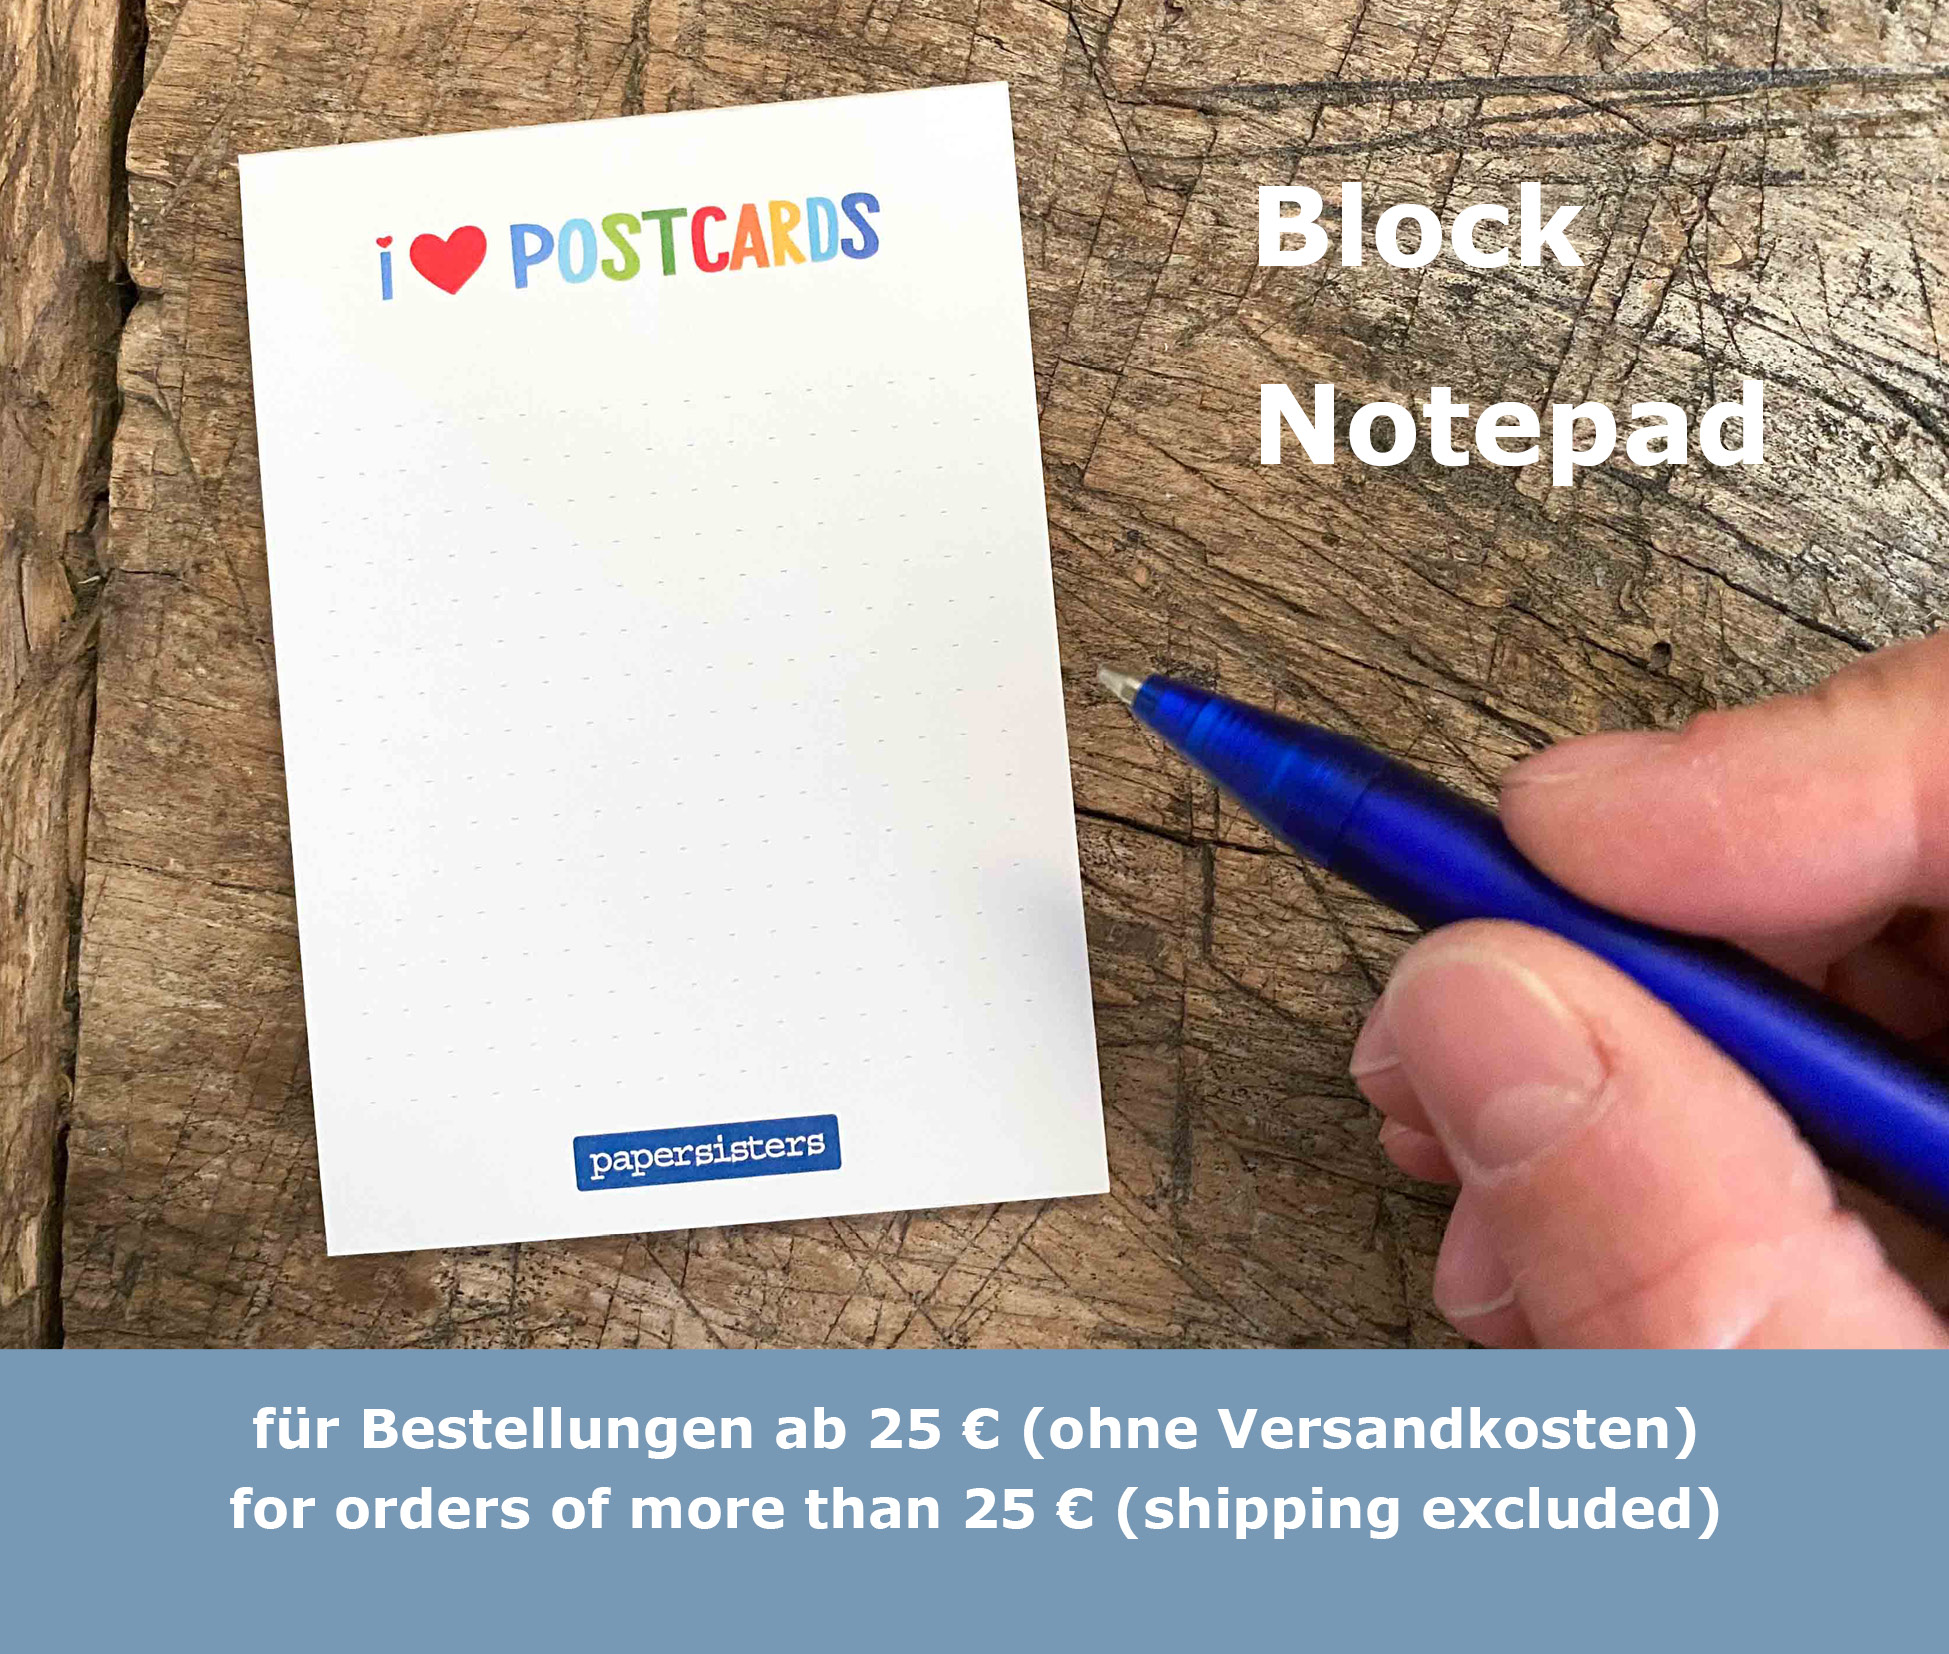 papersisters-Goodie-Notizblock-Notepad-I-love-Postcards